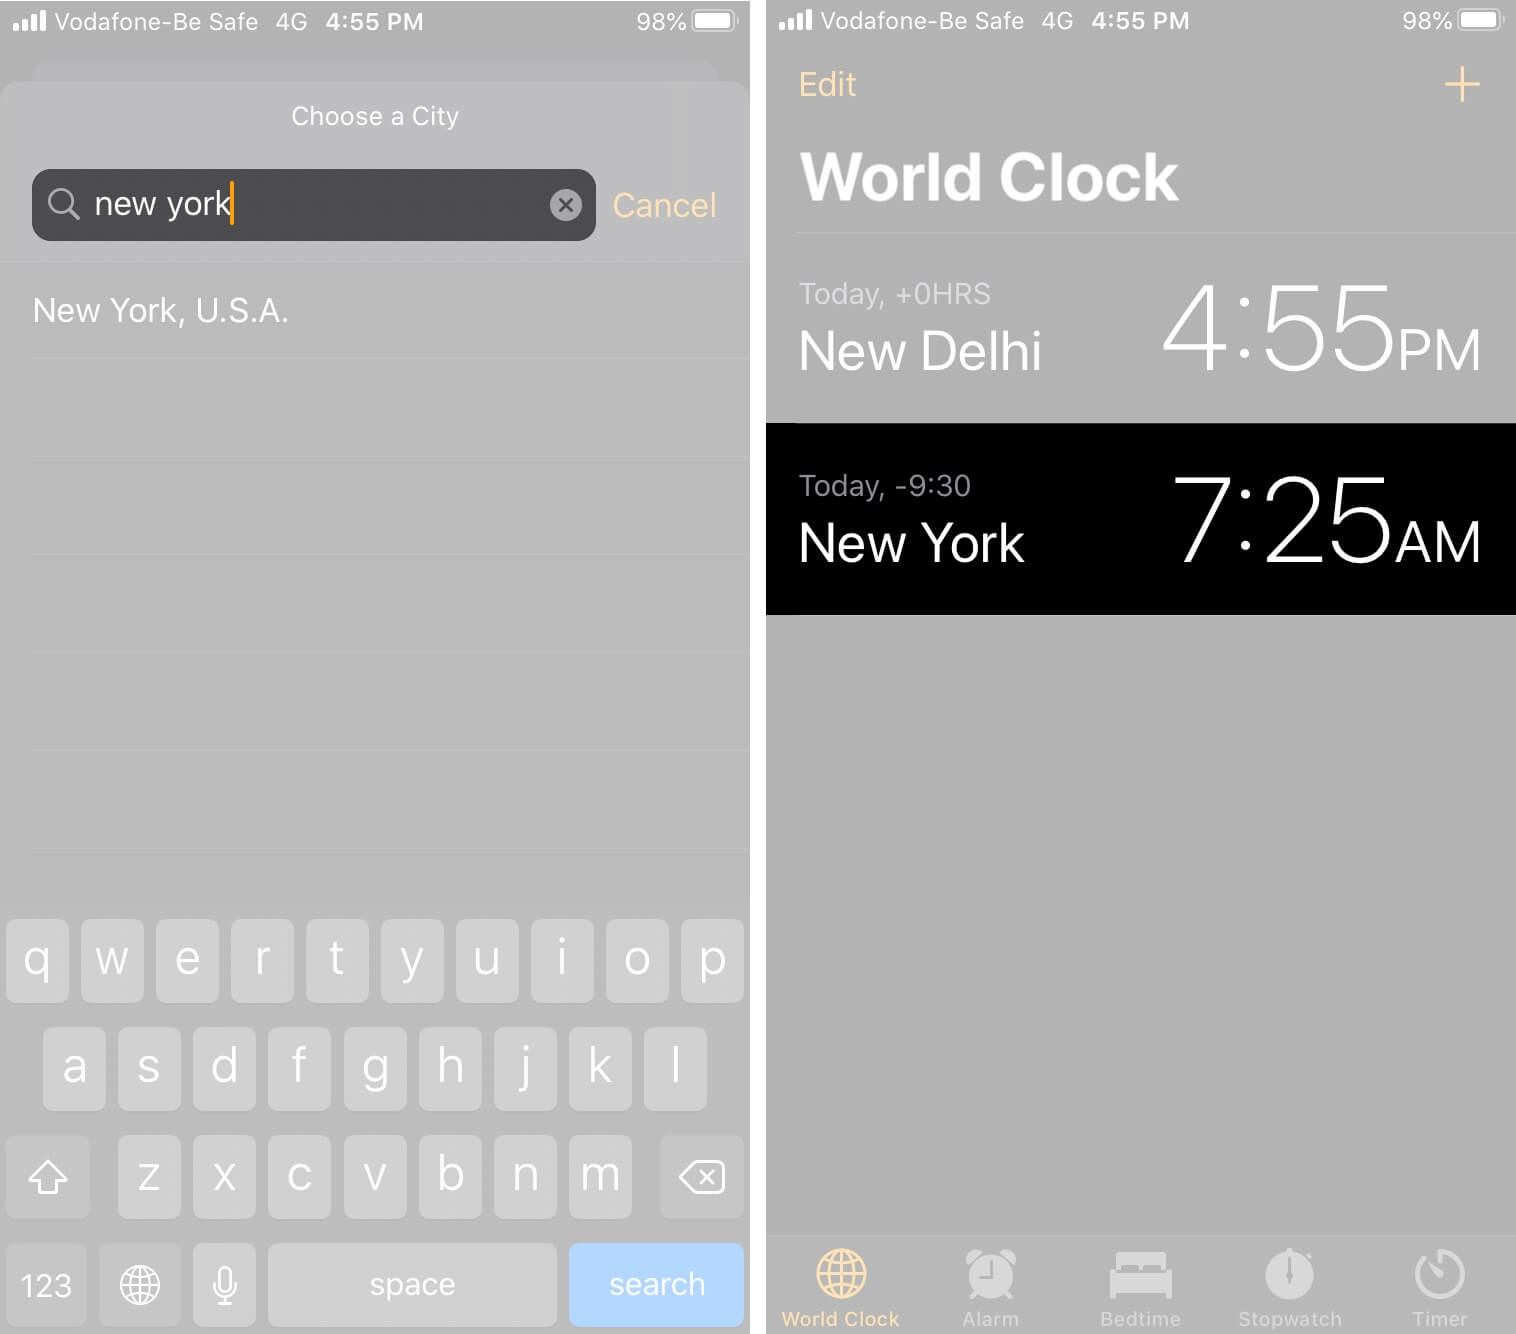 Add World Clock on iPhone